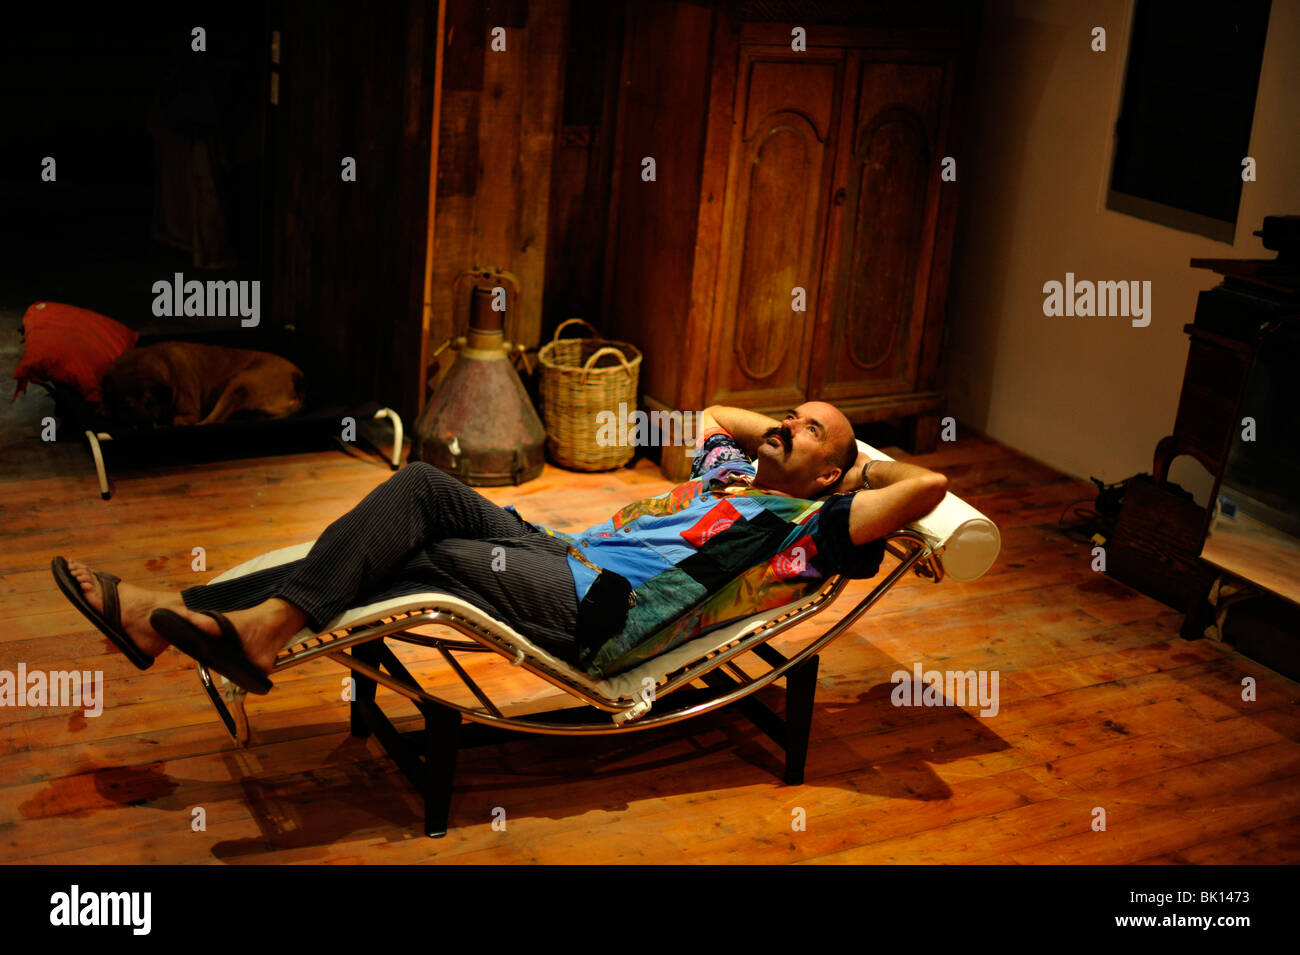 A man relaxing on a Le Corbusier chair Stock Photo: 28914119 - Alamy